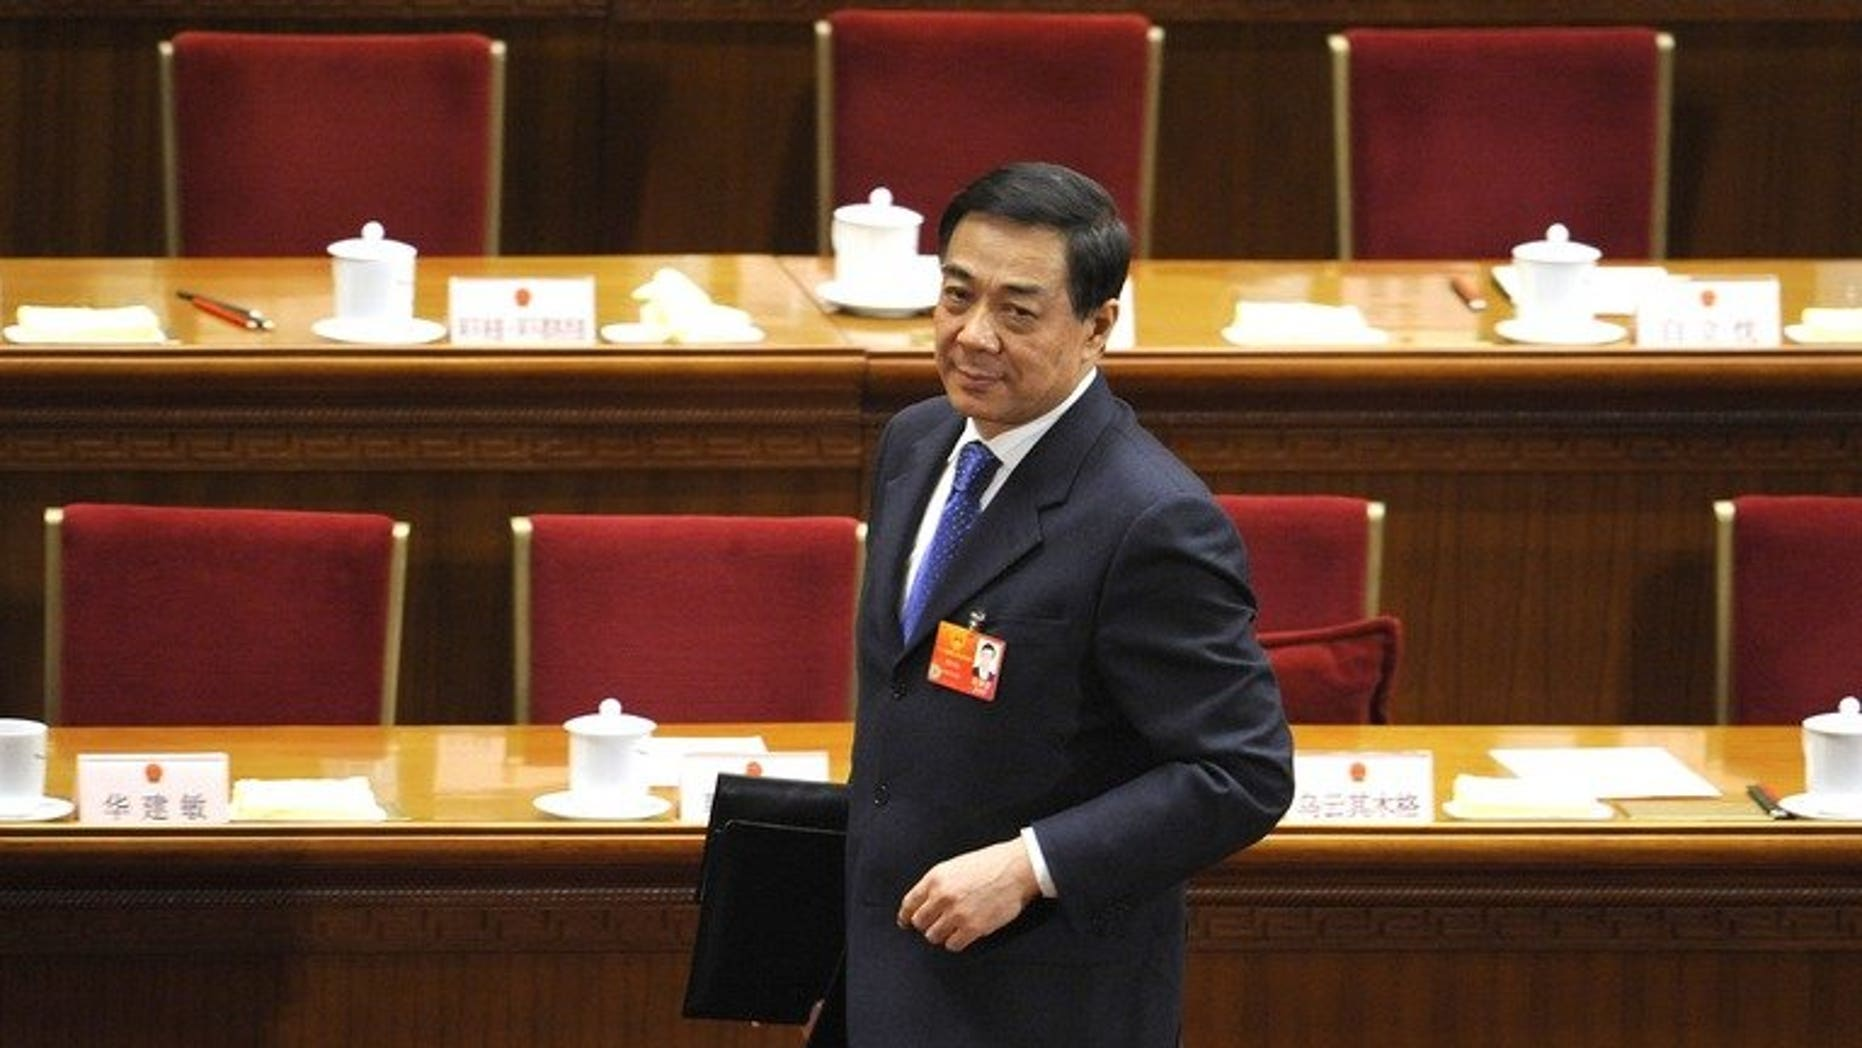 In a file photo taken on March 9, 2012, Bo Xilai leaves after the third plenary session of the National People's Congress's (NPC) annual session at the Great Hall of the People in Beijing. Bo will stand trial from Thursday, state media said on Sunday.